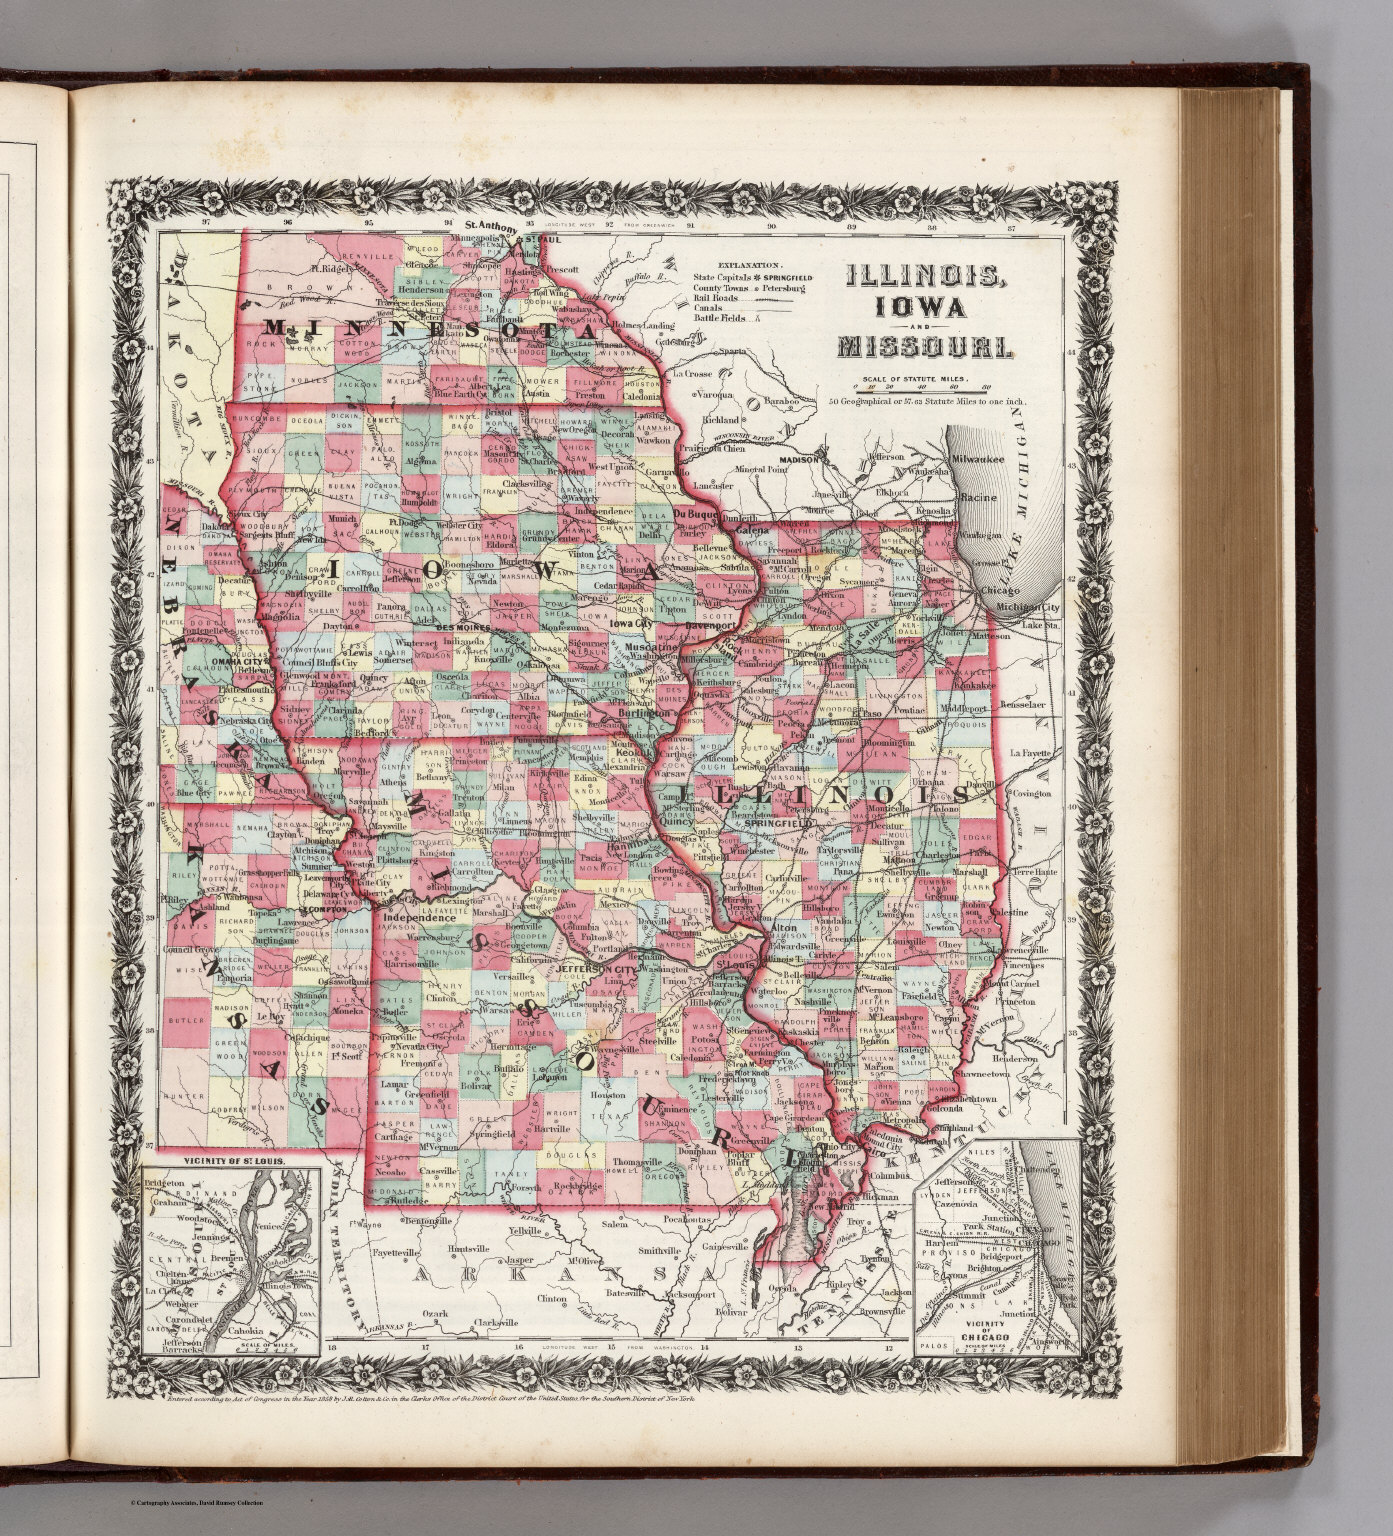 Illinois Iowa and Missouri David Rumsey Historical Map Collection